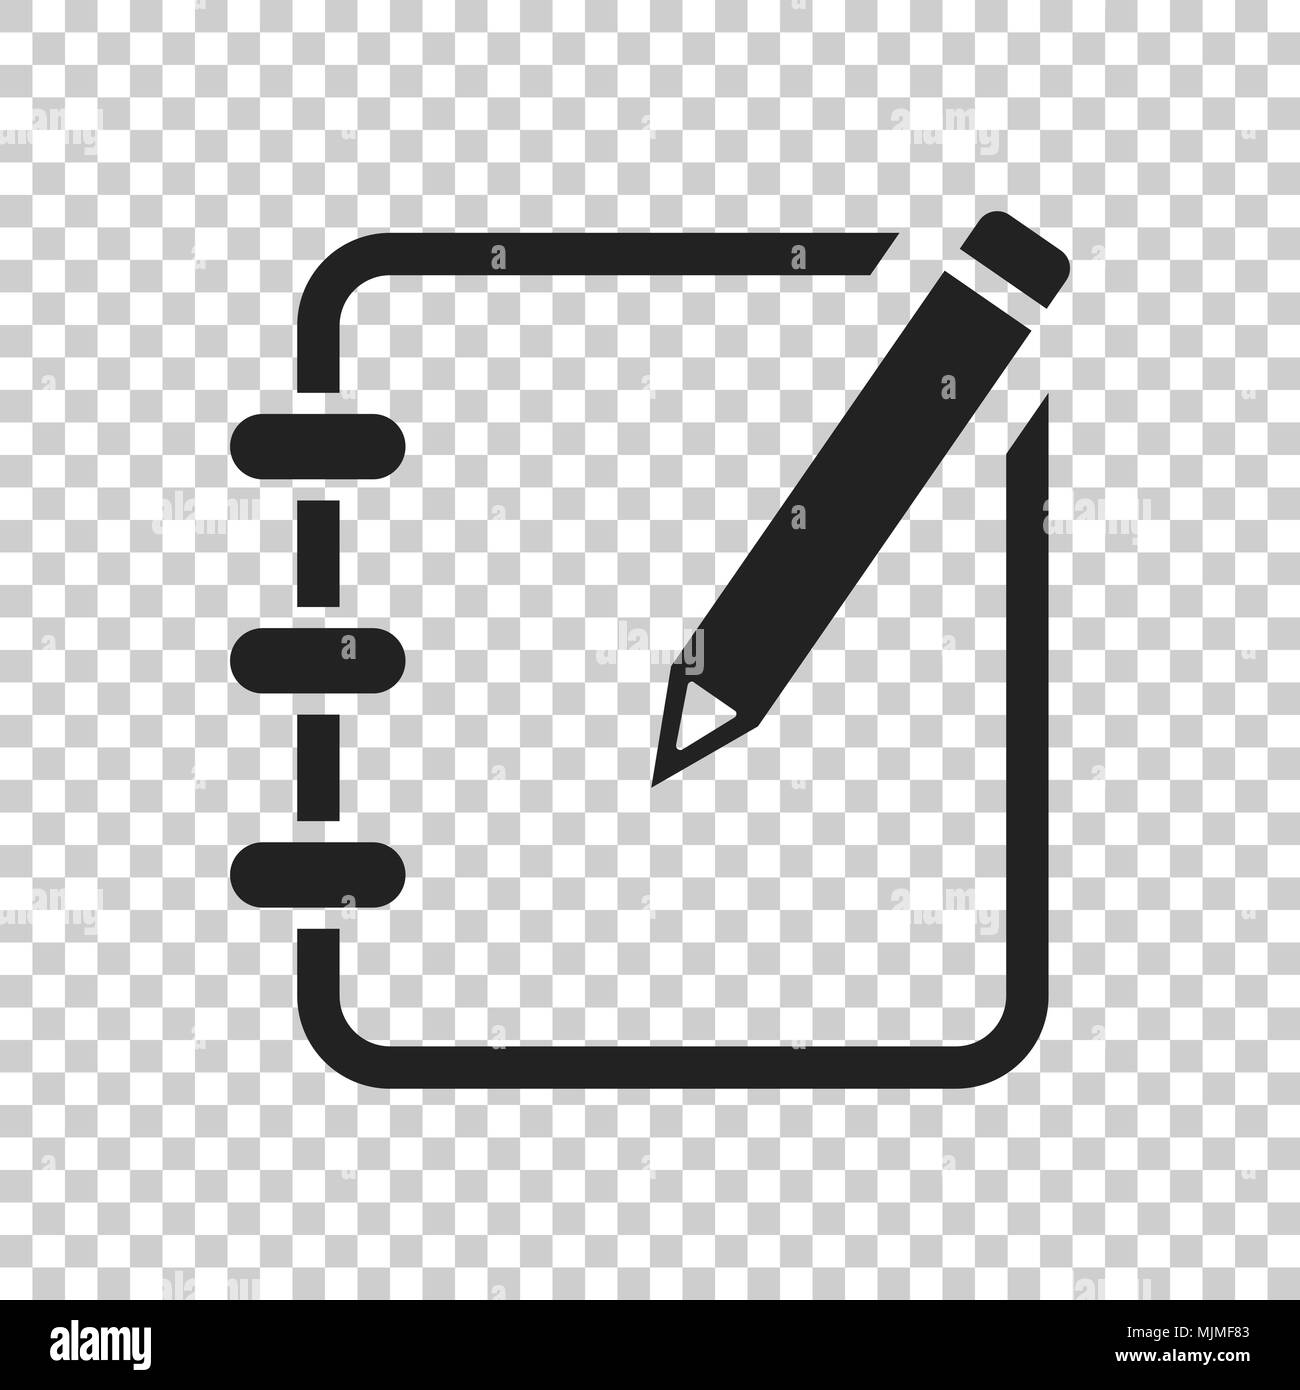 Notepad Edit Document With Pencil Icon Vector Illustration On Isolated Transparent Background Business Concept Note Edit Pictogram Stock Vector Image Art Alamy